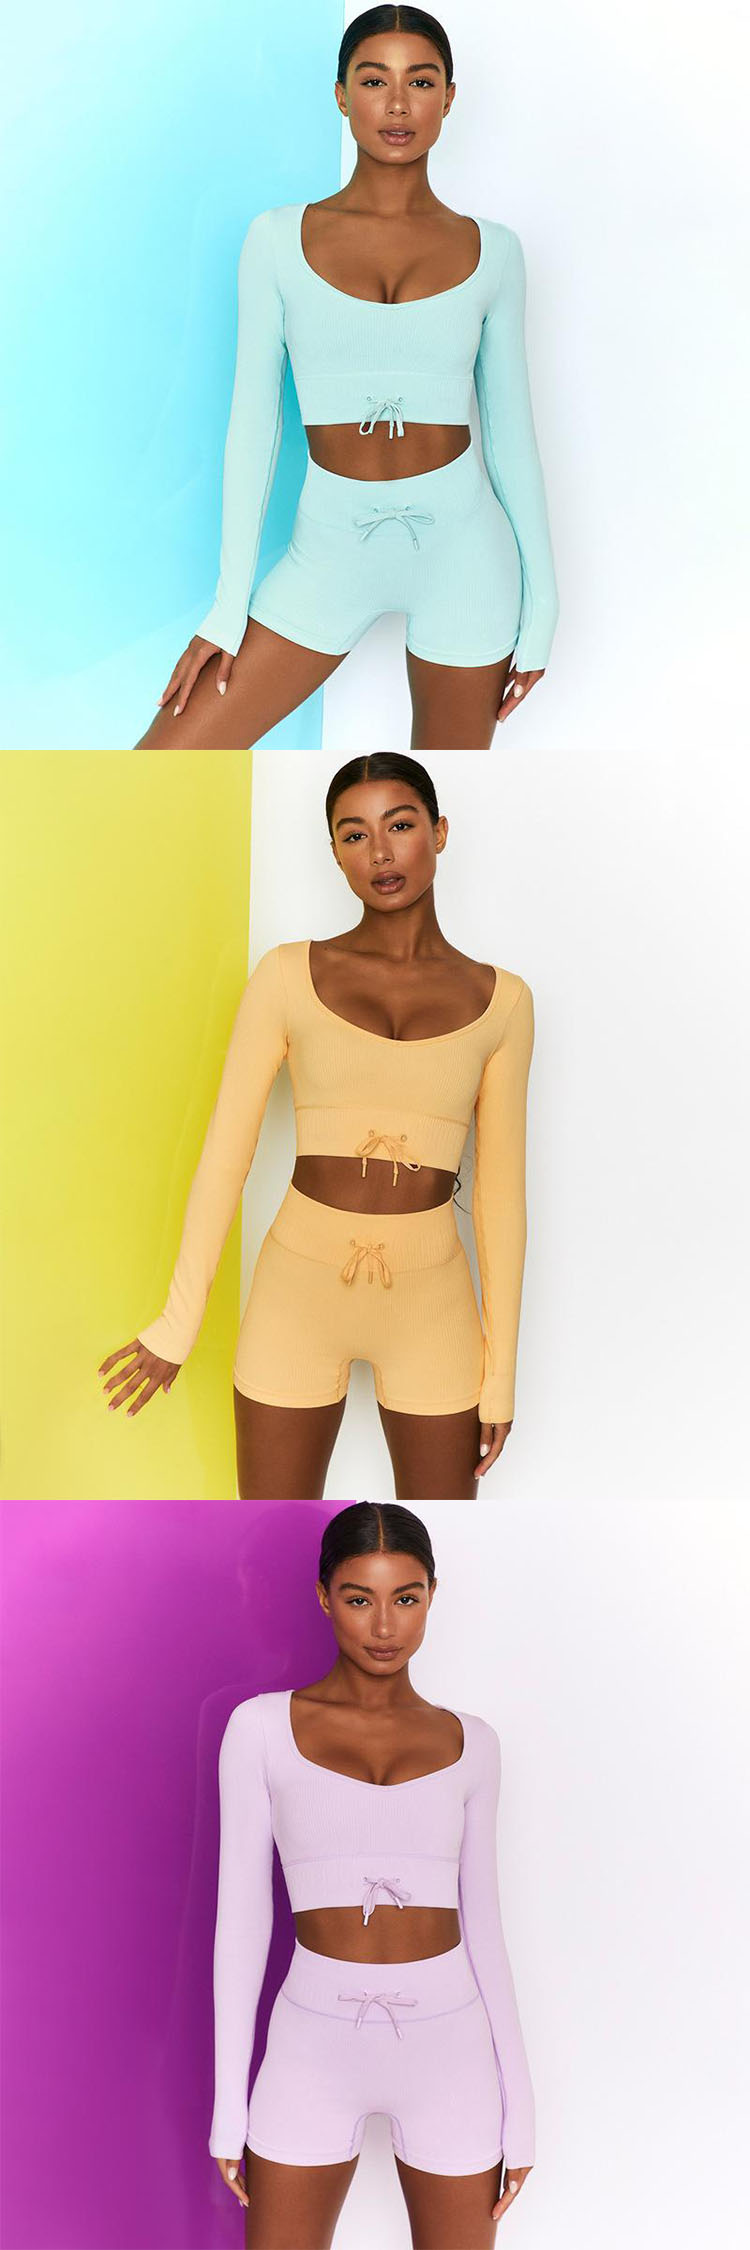 Wrap around the waist and gather the abdomen. It shows a small waist and brings you a comfortable wearing experience.Wrap around the waist and gather the abdomen. It shows a small waist and brings you a comfortable wearing experience.